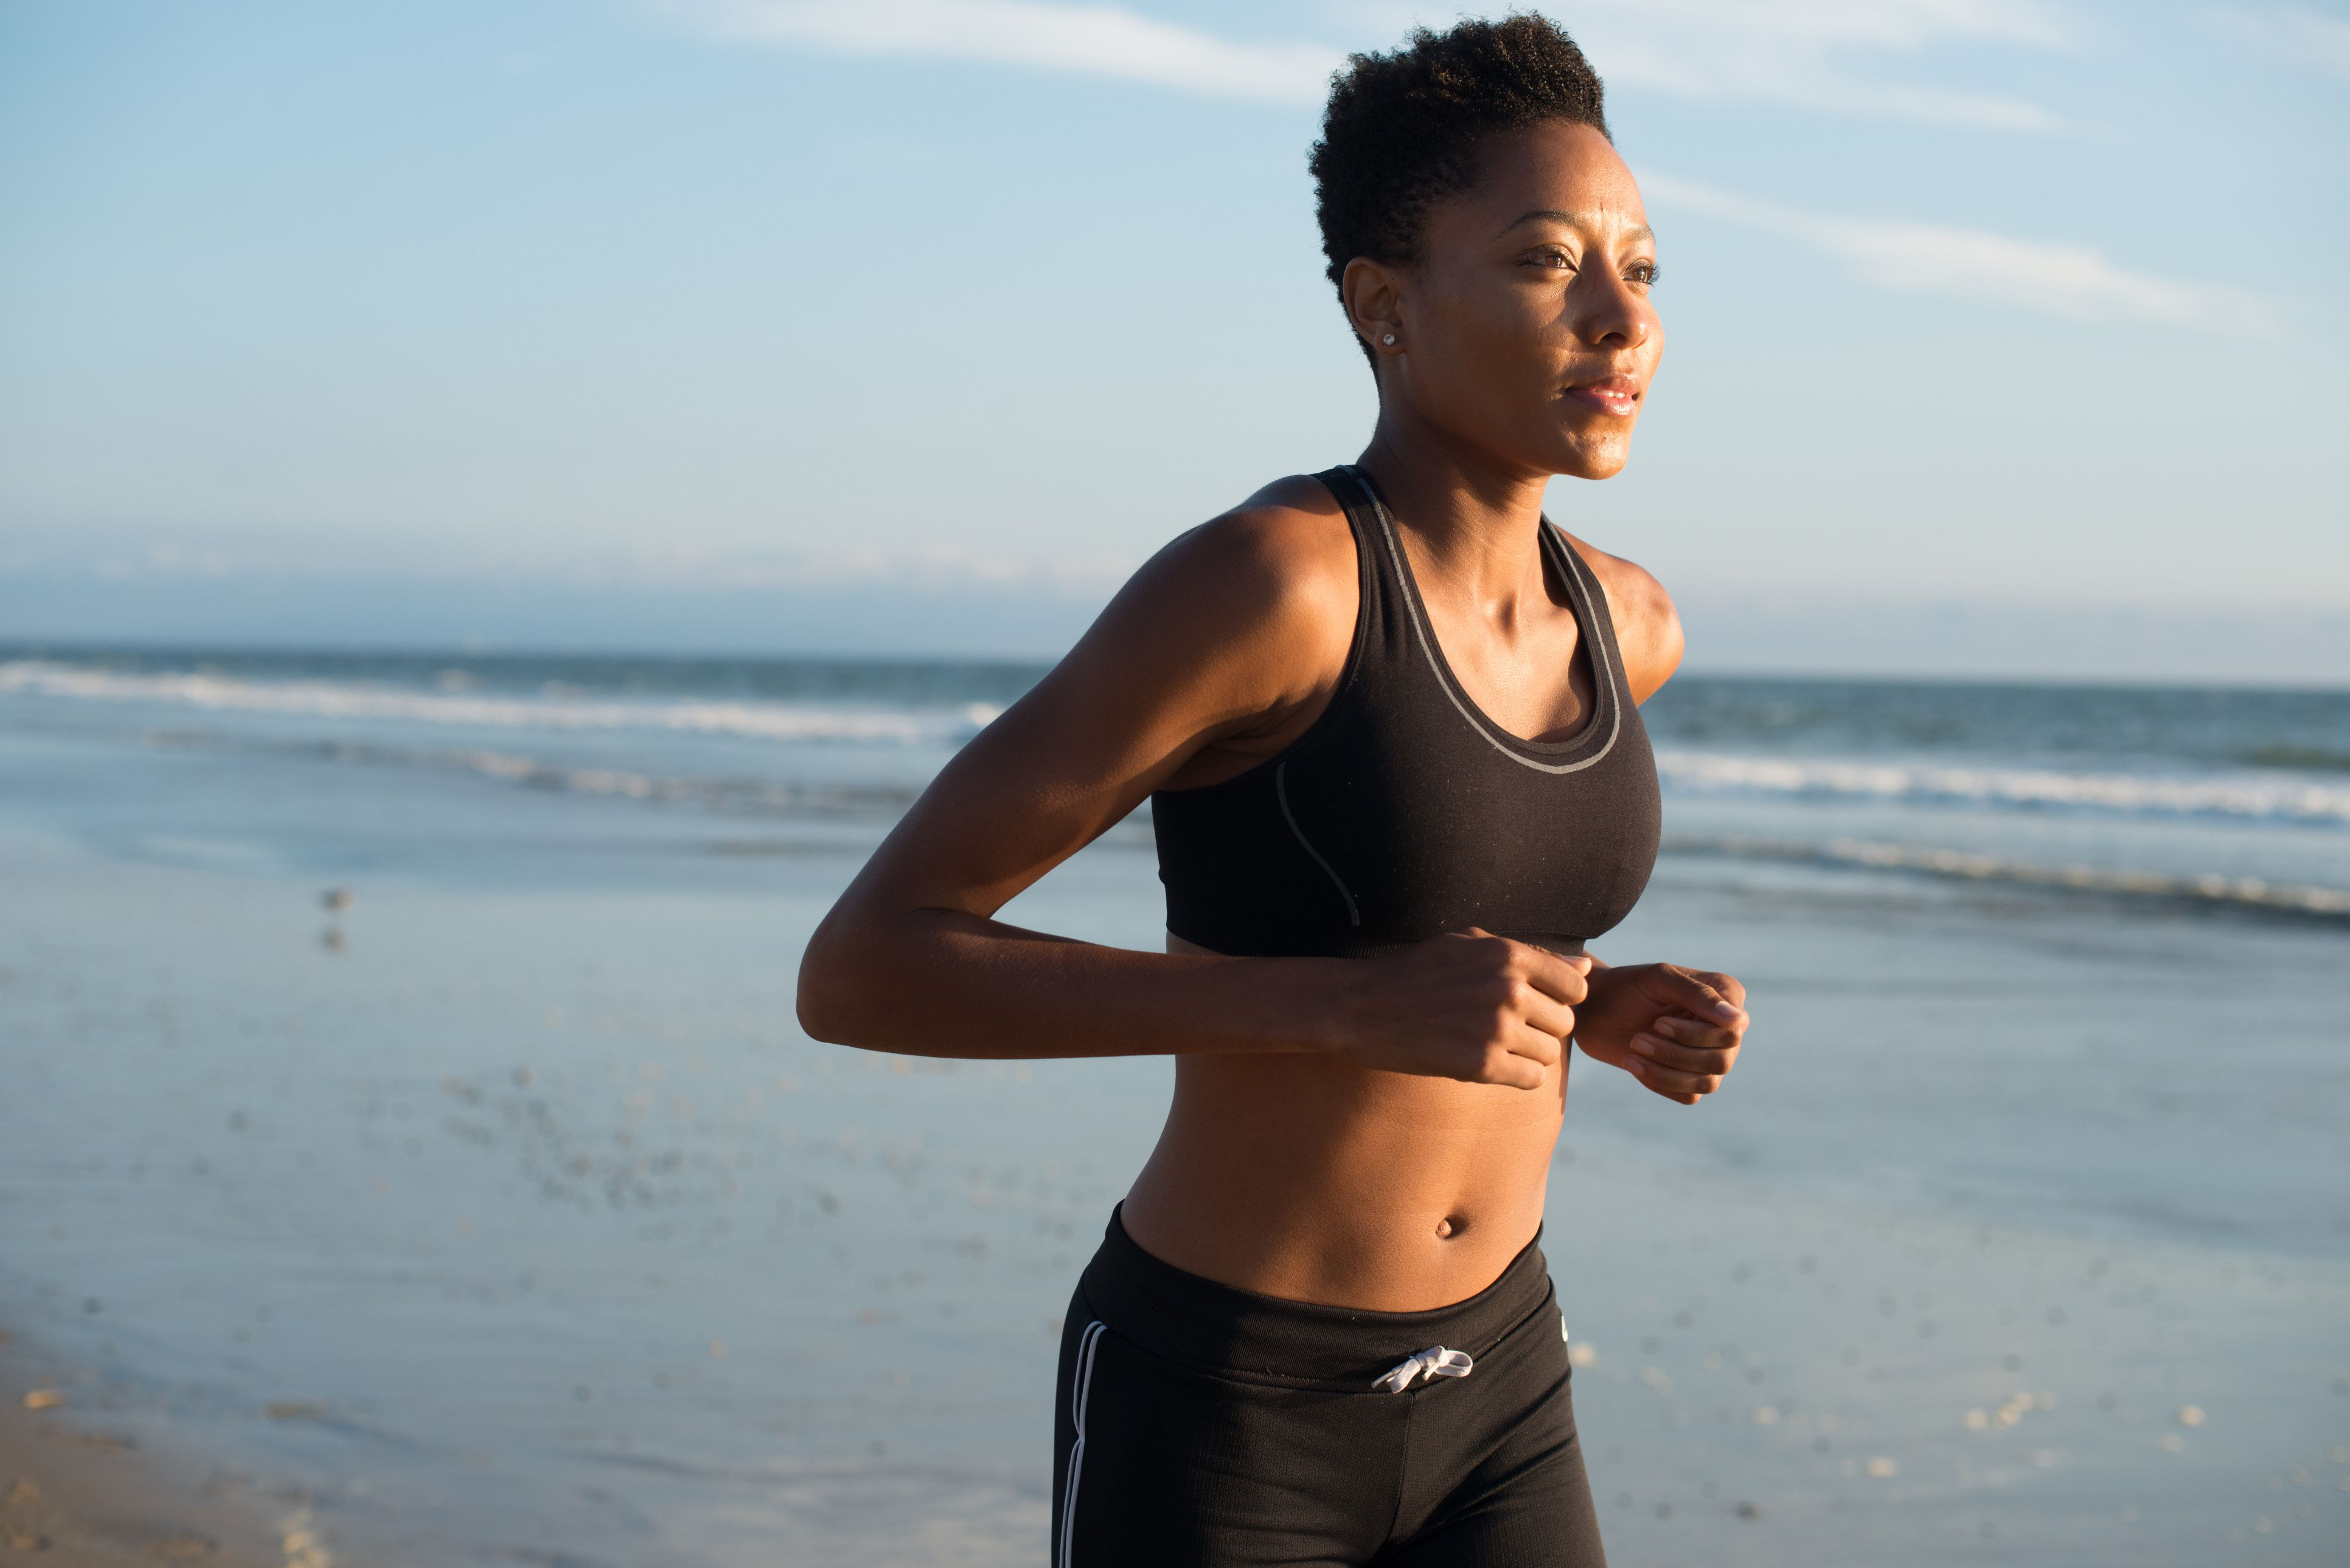 fe7f8412e1 The 7 Best High-Impact Sports Bras of 2019